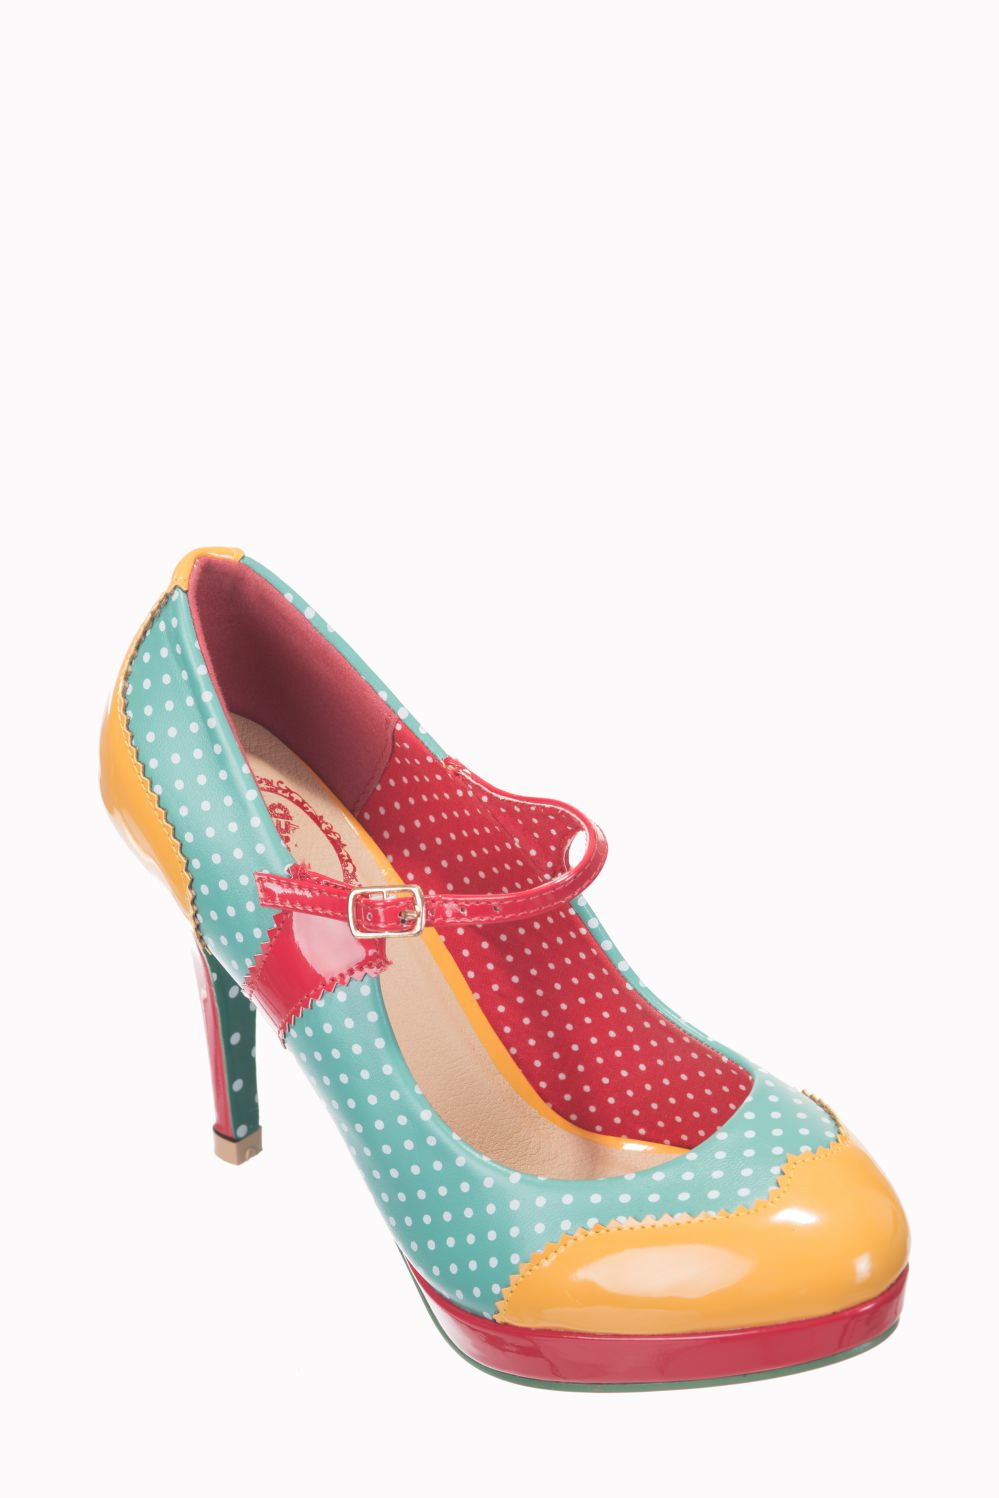 Dancing Days Mary Jane Amber Aqua 50s Polka Dot Shoes